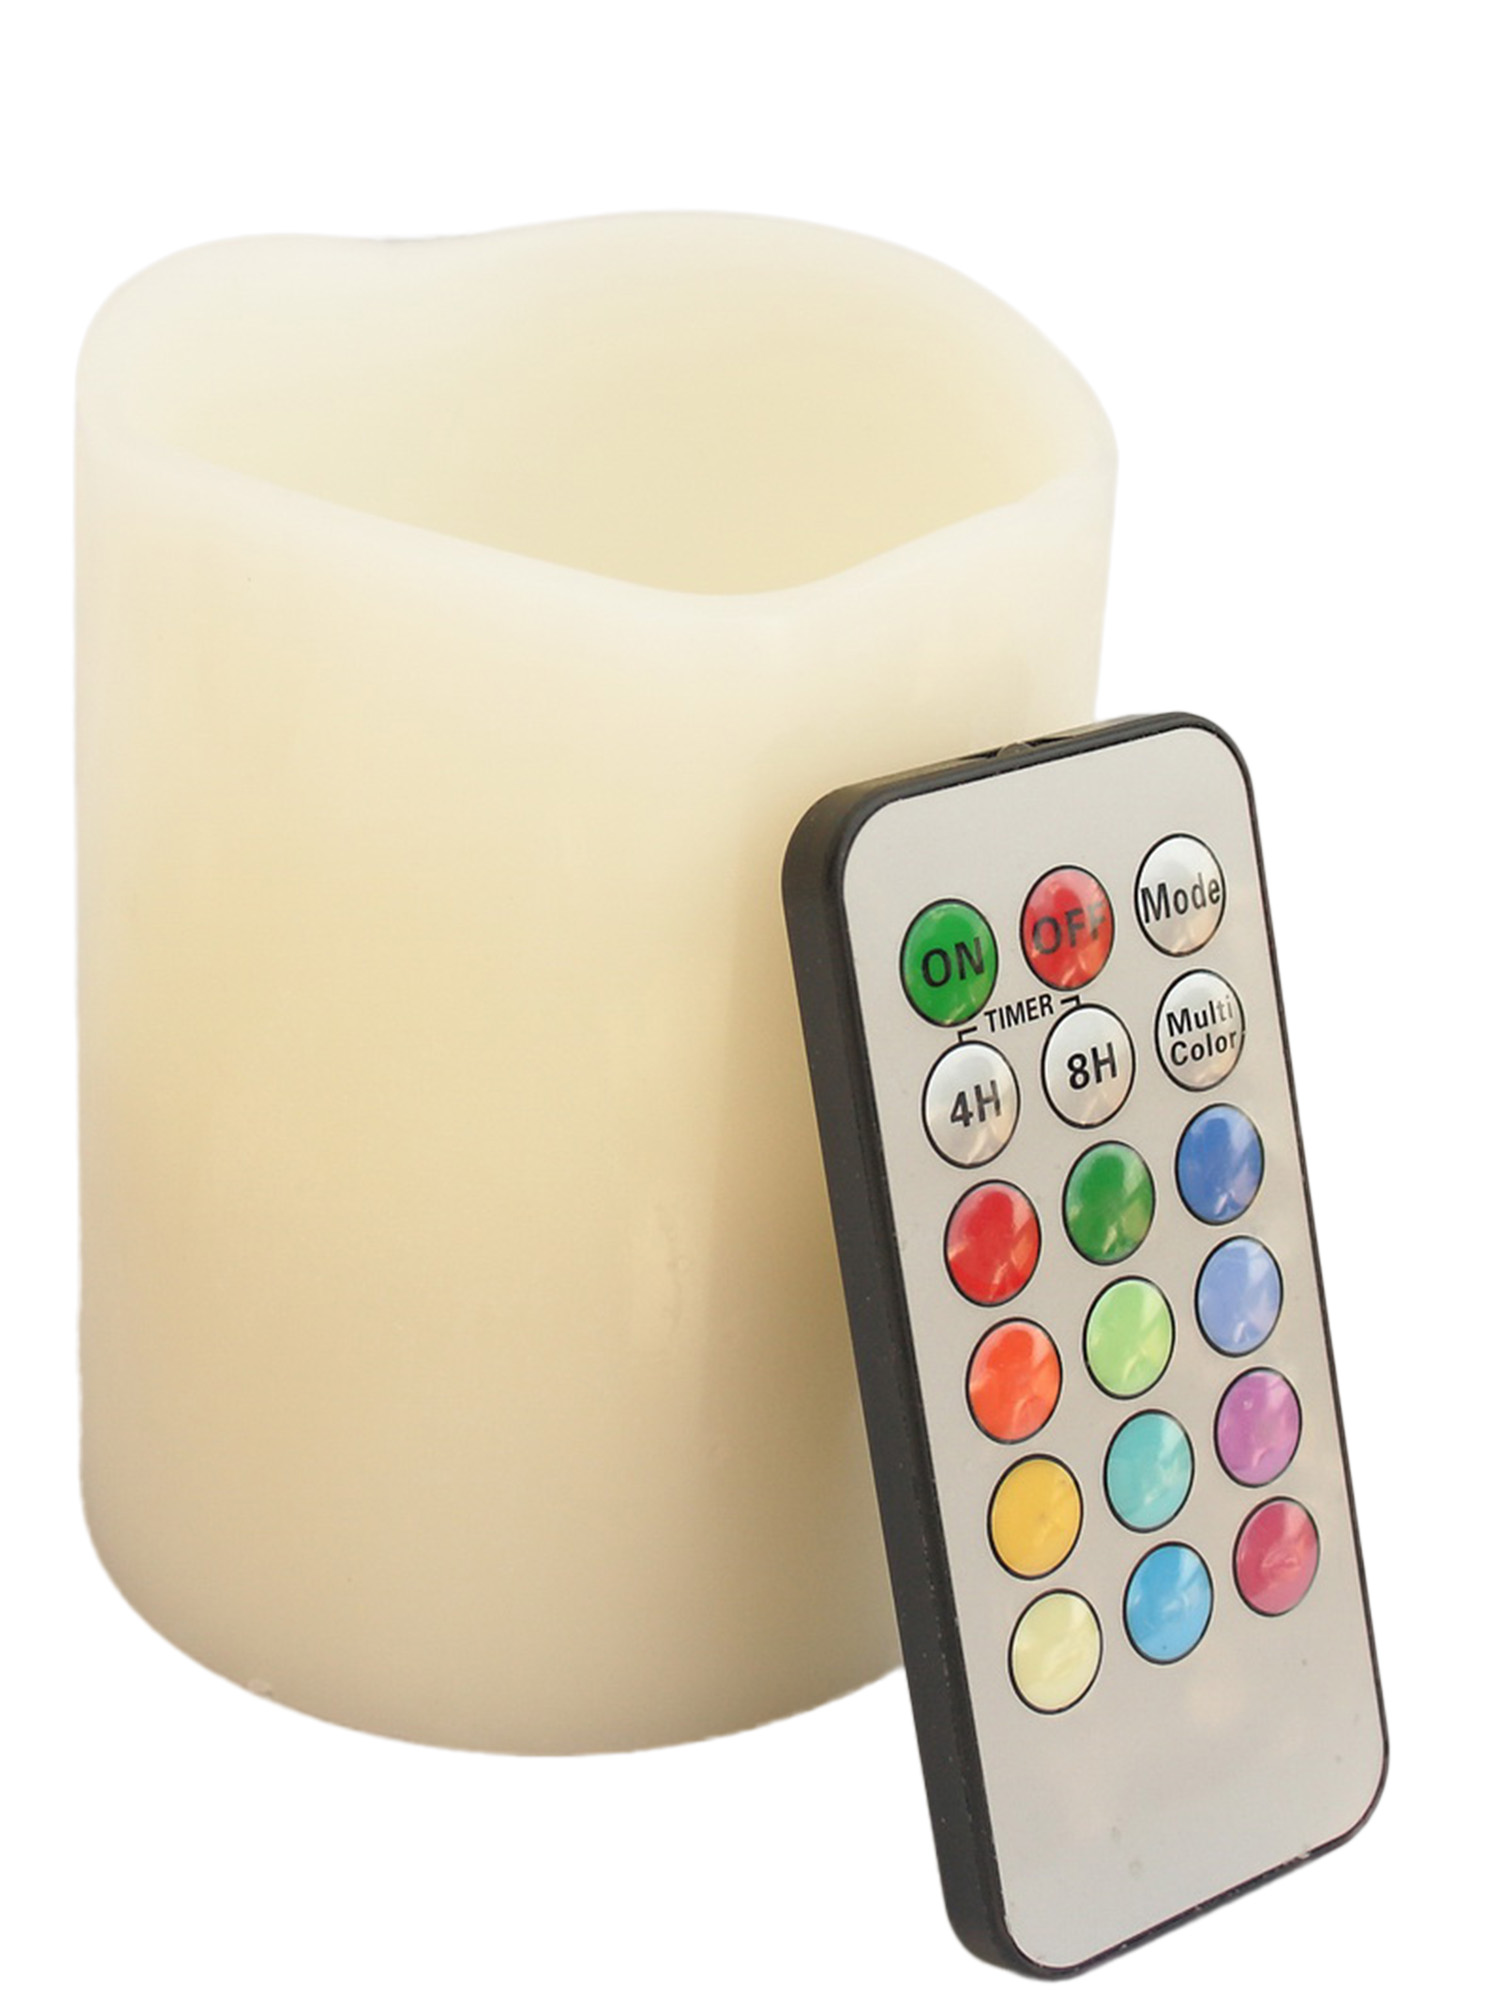 Round Melted Edge Remote Controlled Multi Color Changing Flameless Wax Pillar Candle - 4 Inch Tall